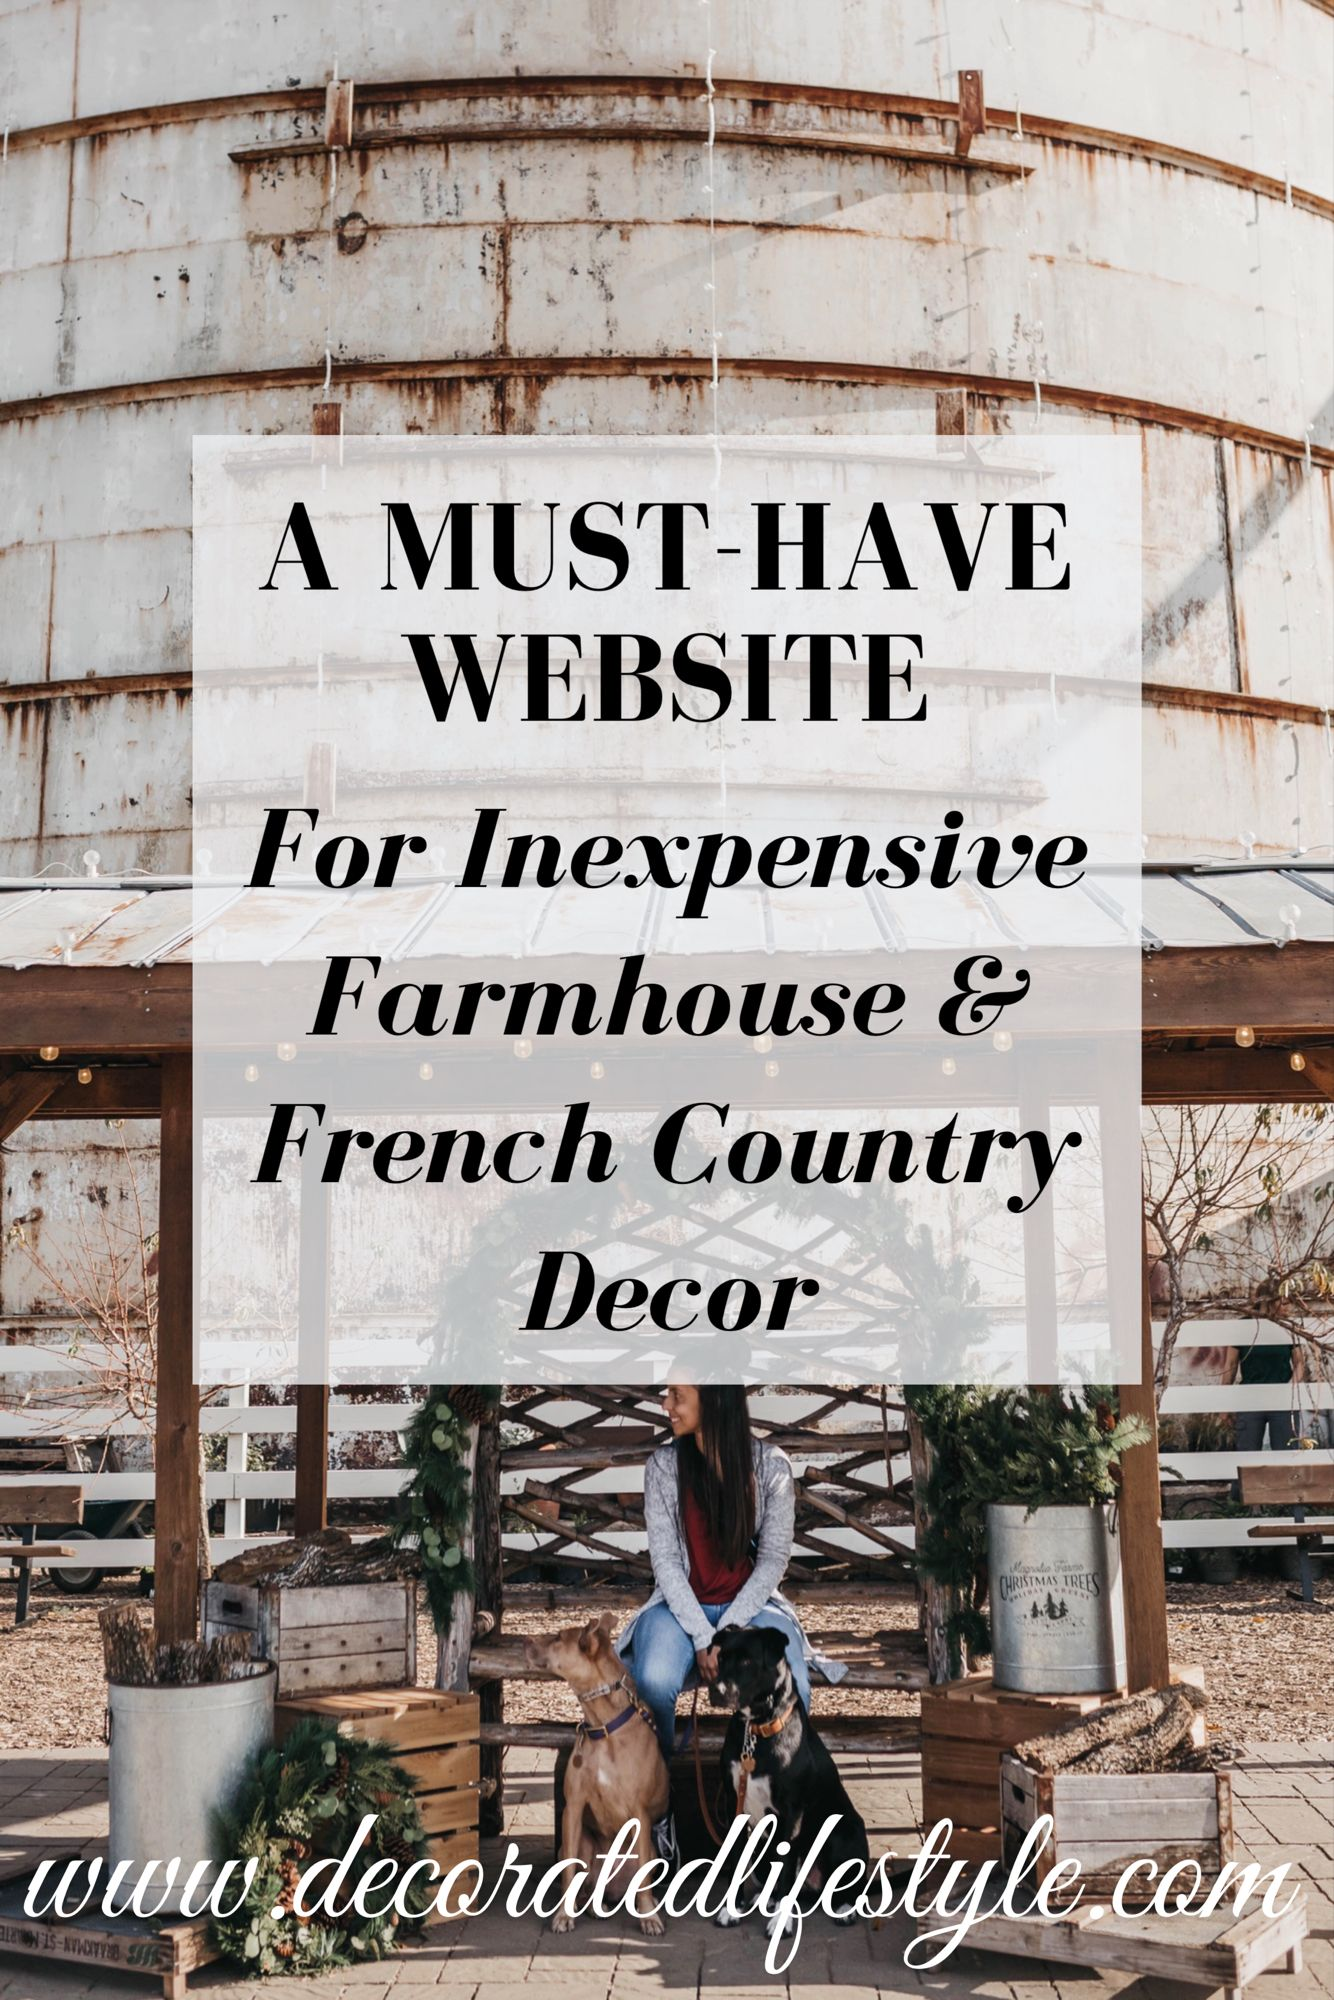 Photo of A MUST-HAVE Website for Inexpensive Farmhouse & French Country Decor